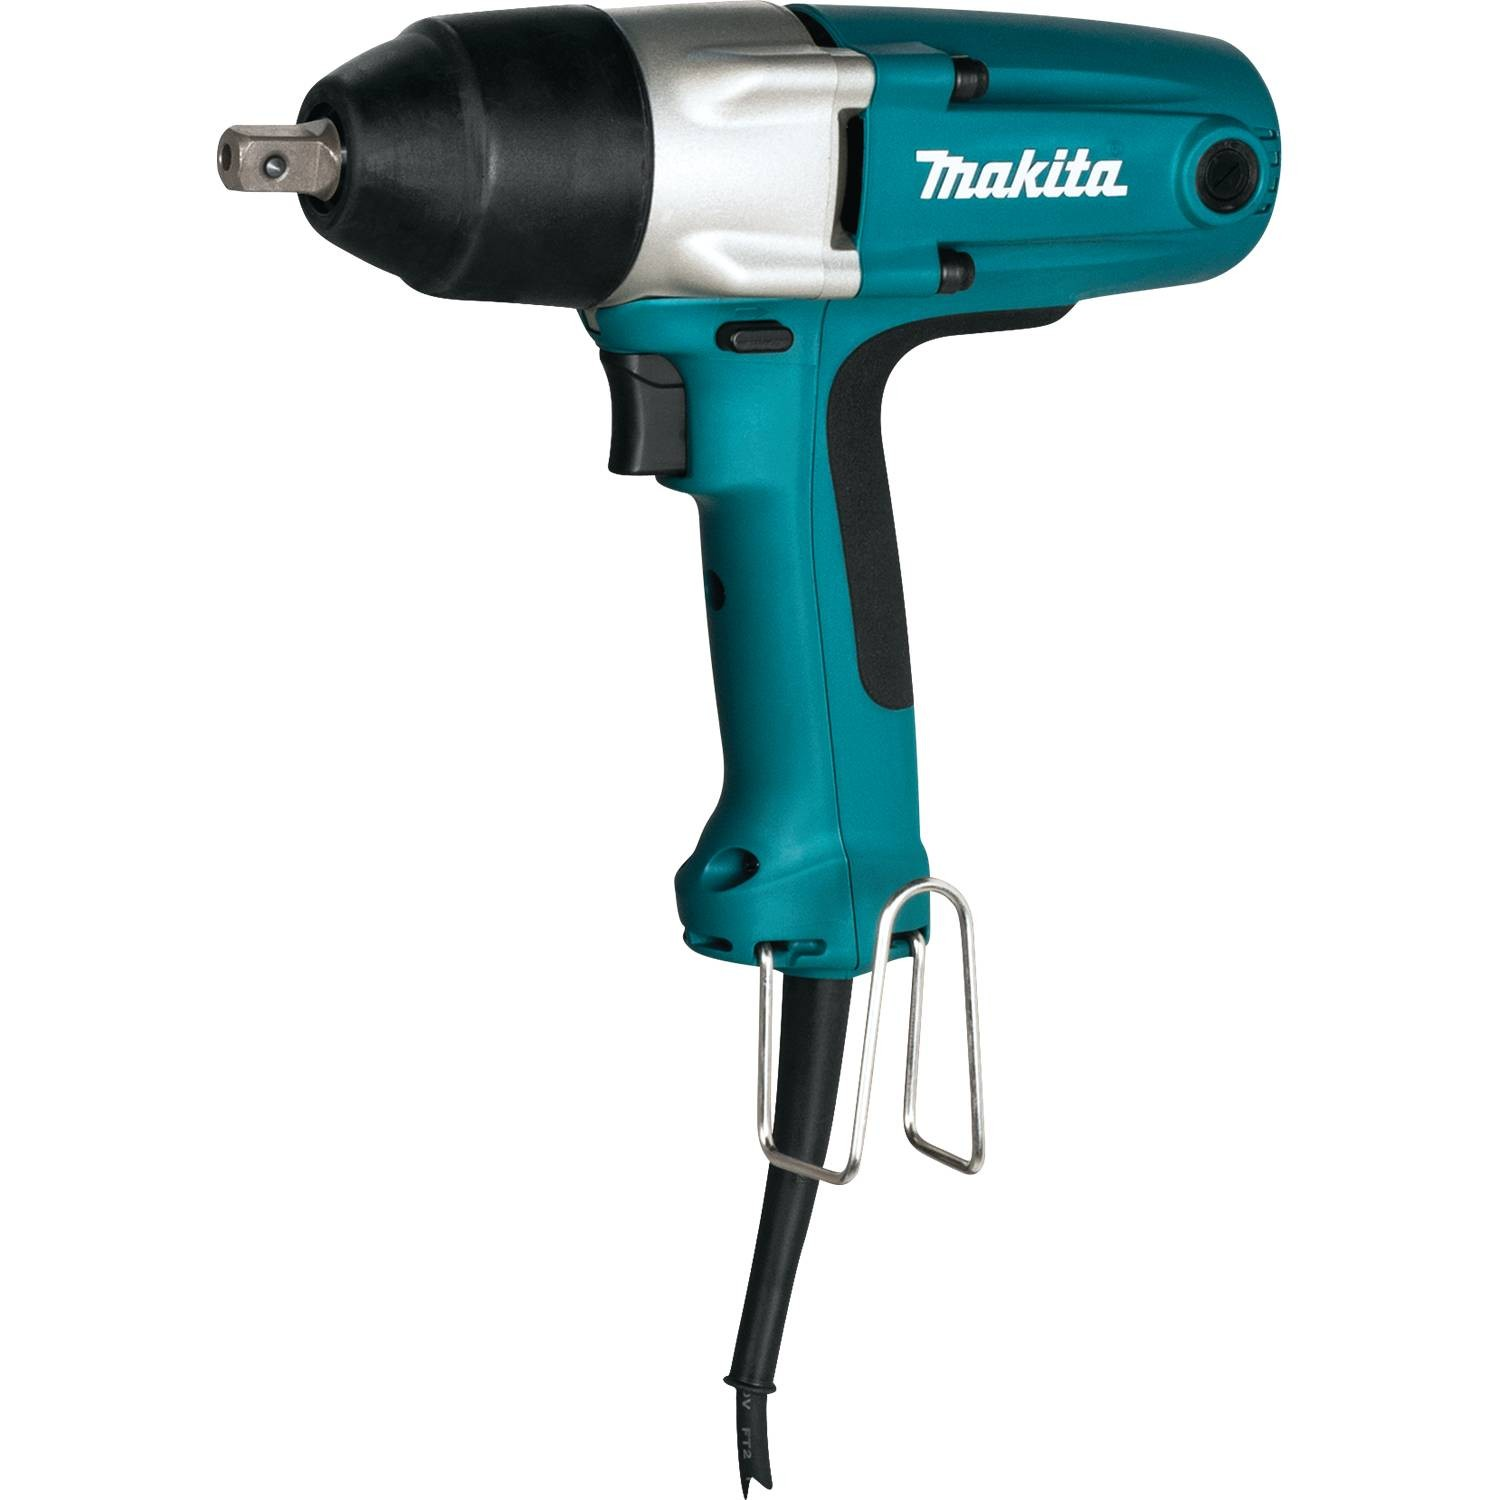 "Makita TW0200 1/2"" Square Drive Impact Wrench 110v in Carry Case"